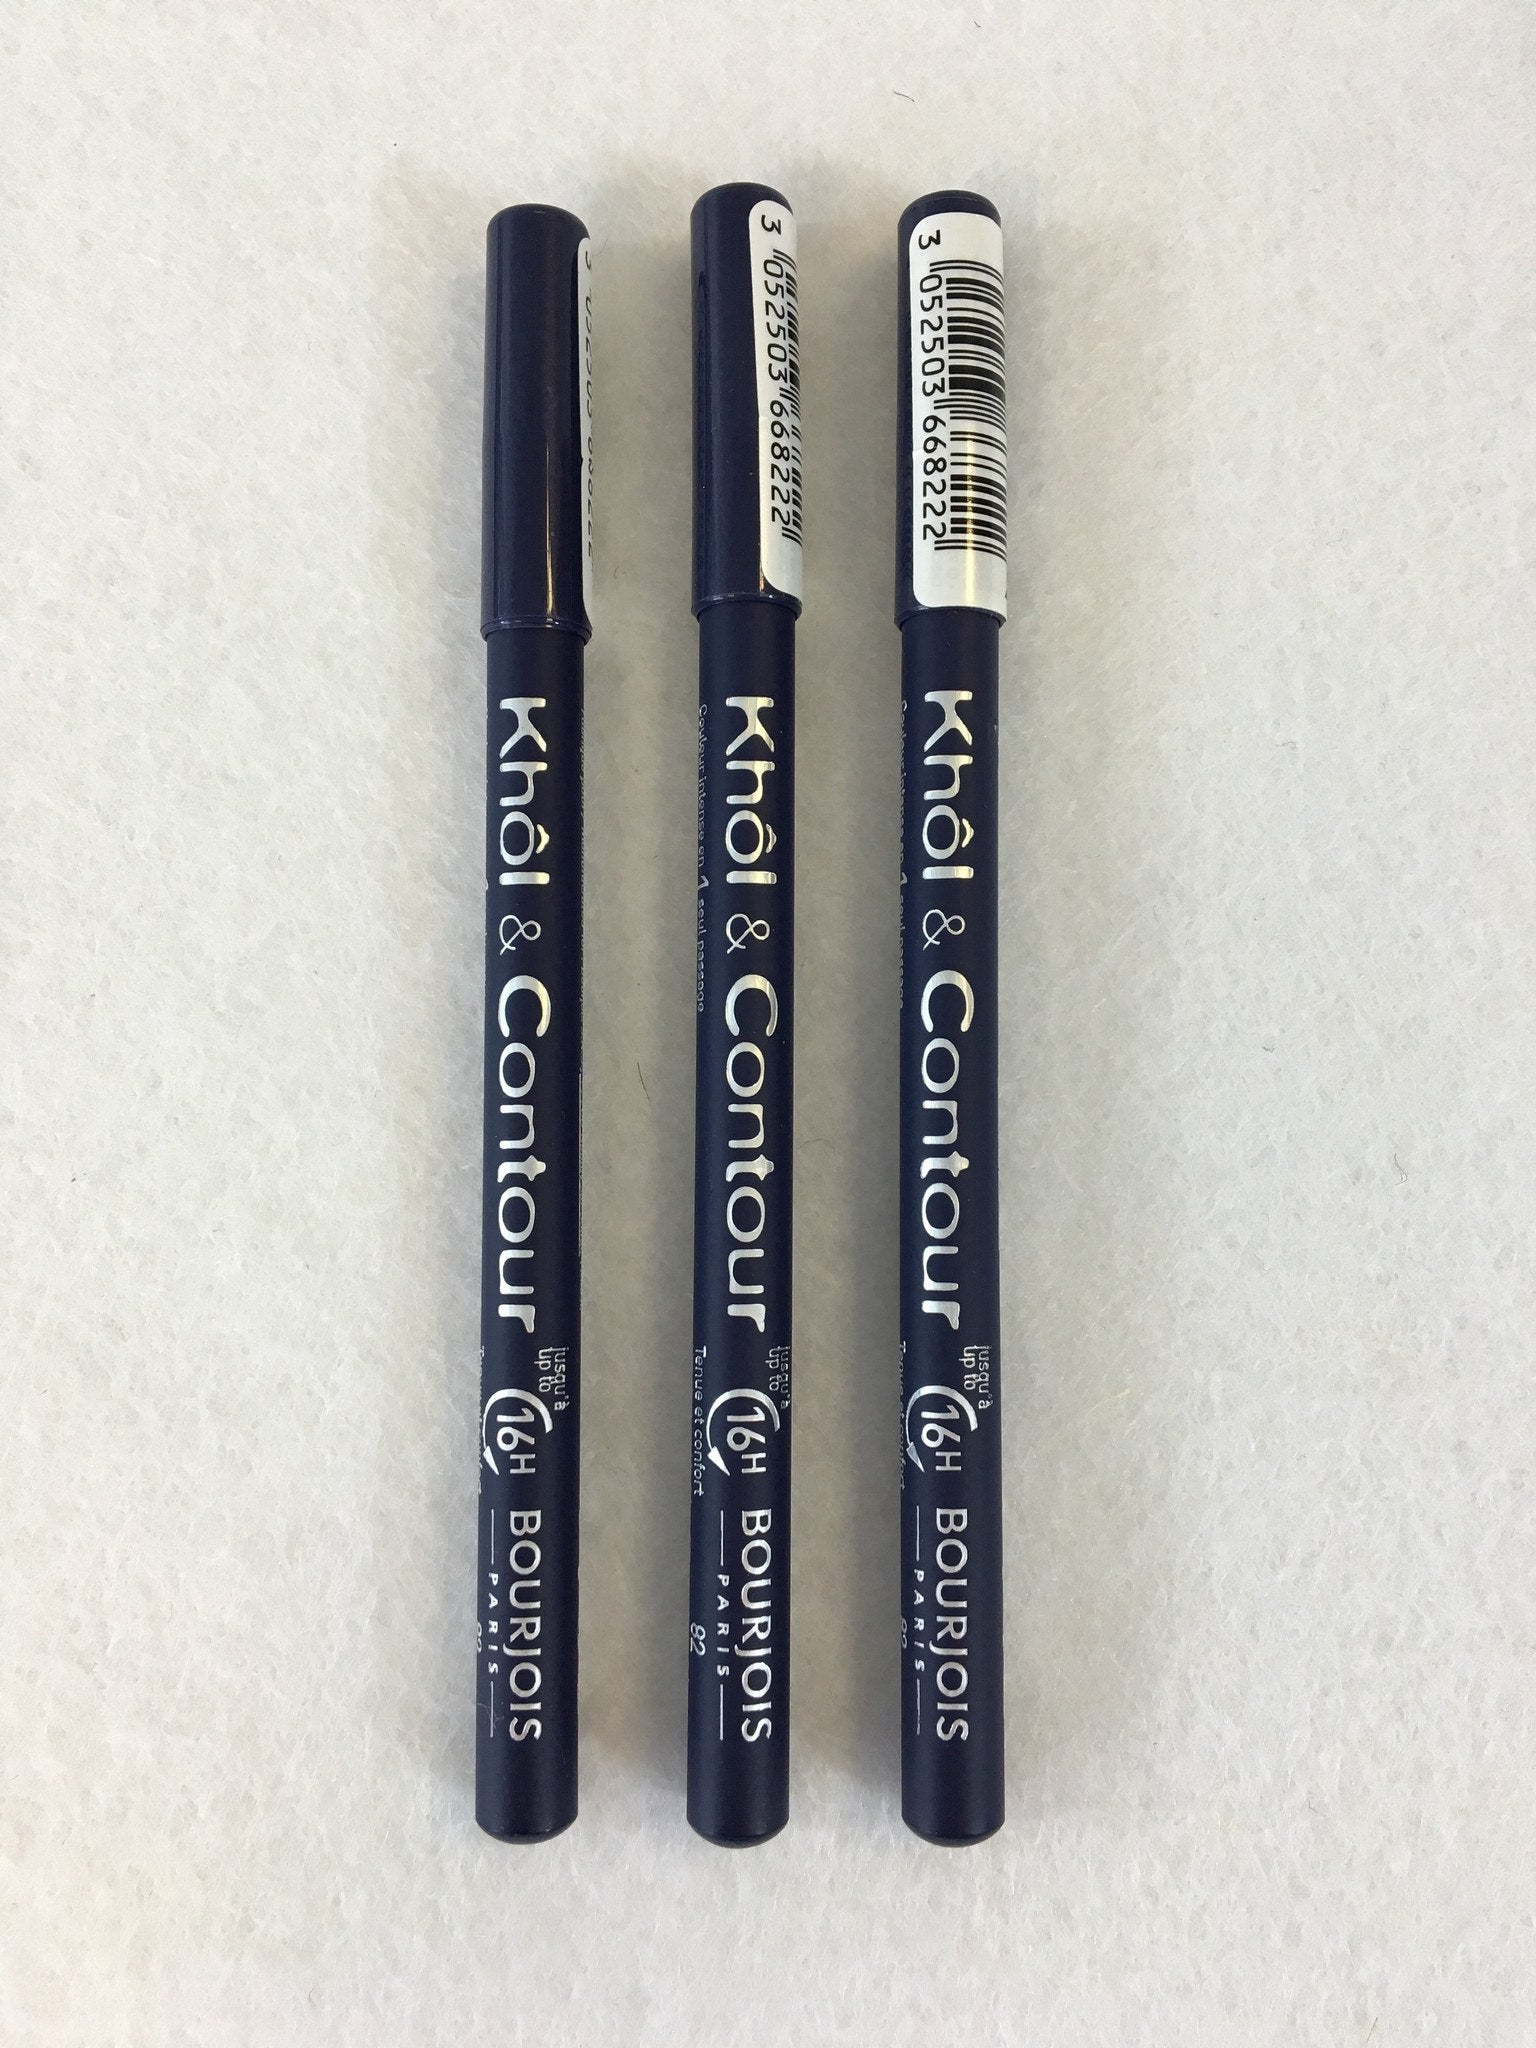 Bourjois Khol & Contour Eye Pencil 82 Bleu Graphique x 6 (£1.50 each) - Fizzy Peach Ltd